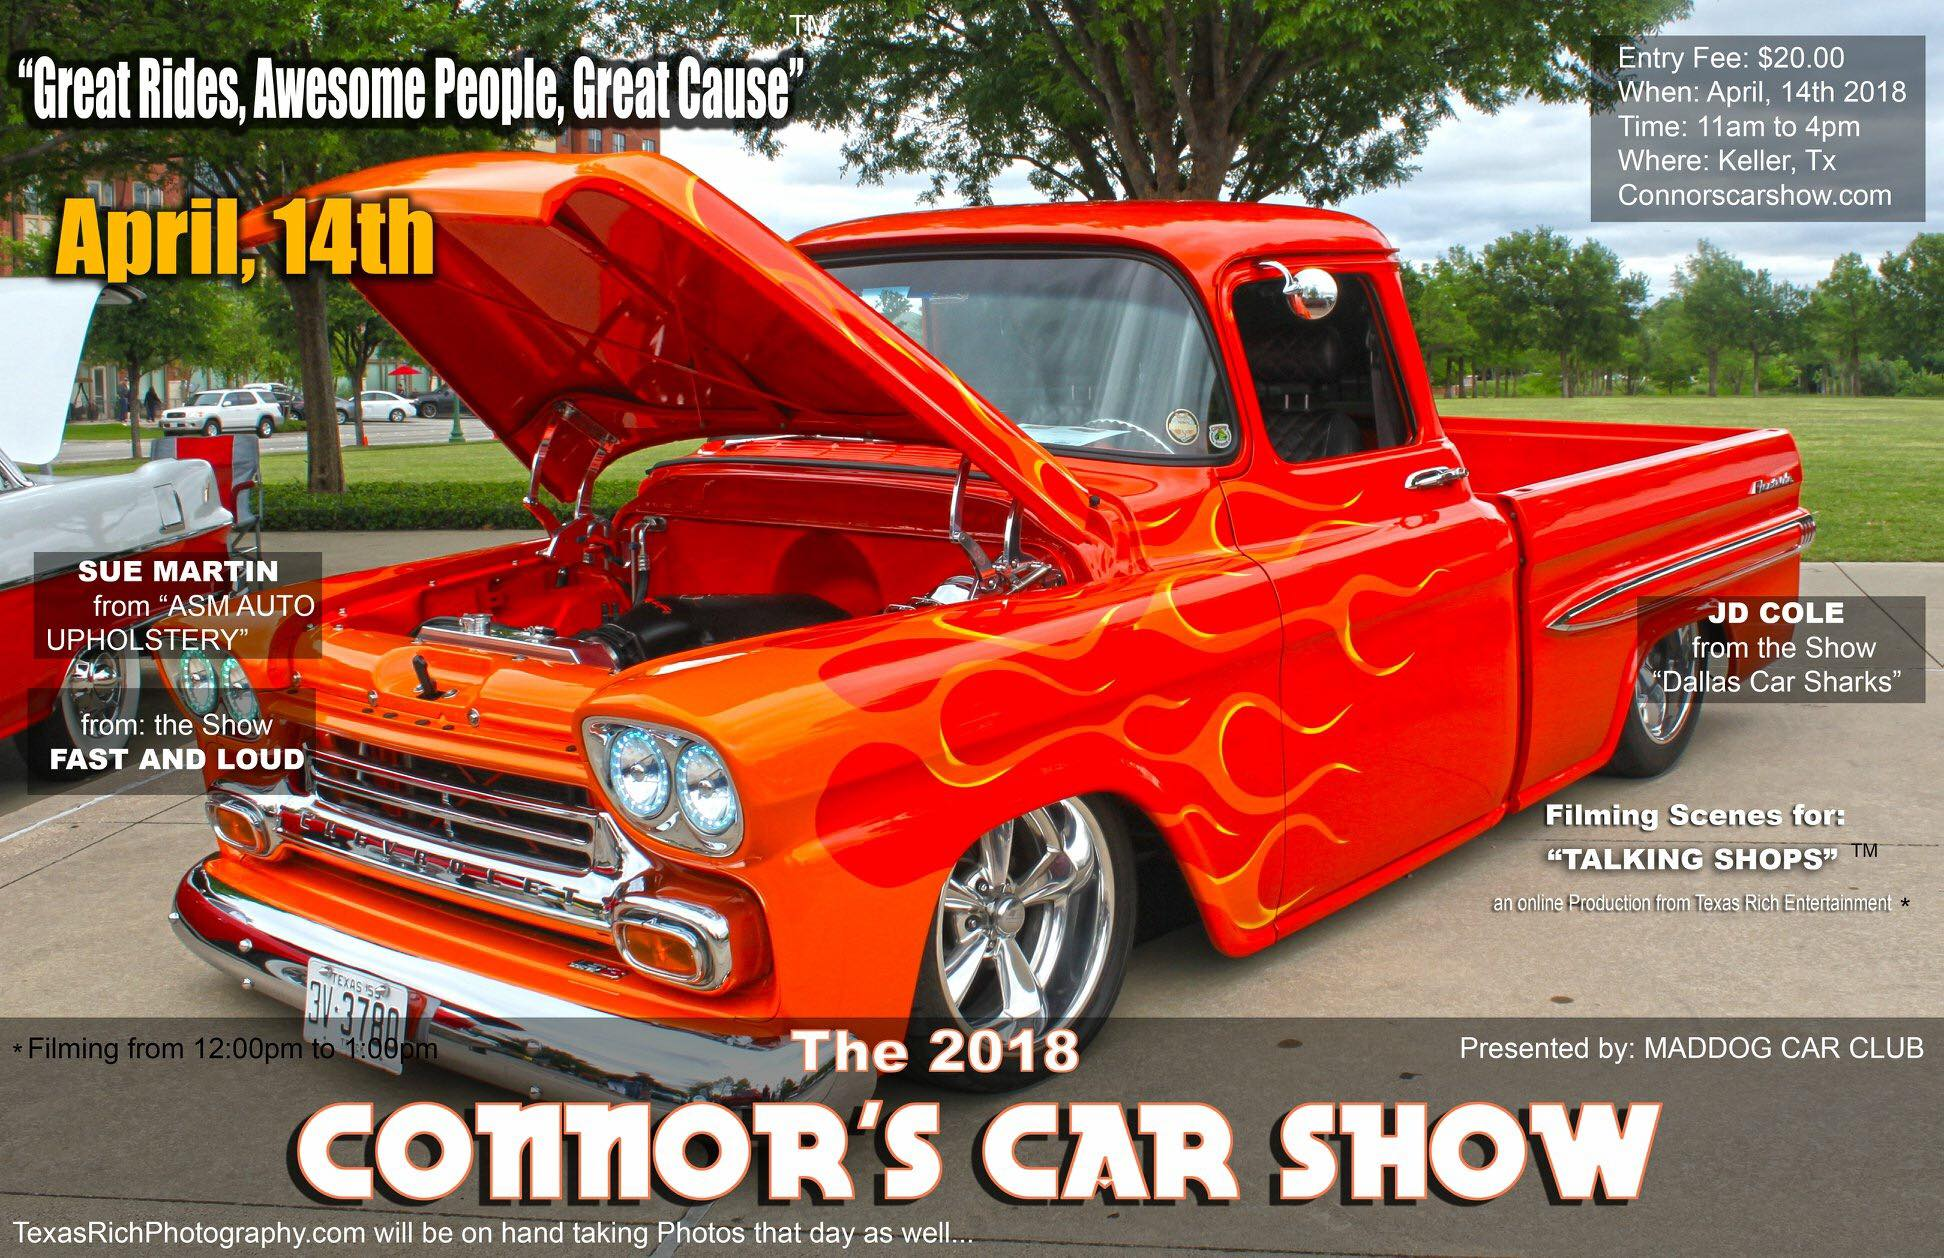 Connors Car Show Car Show Radar - Keller car show